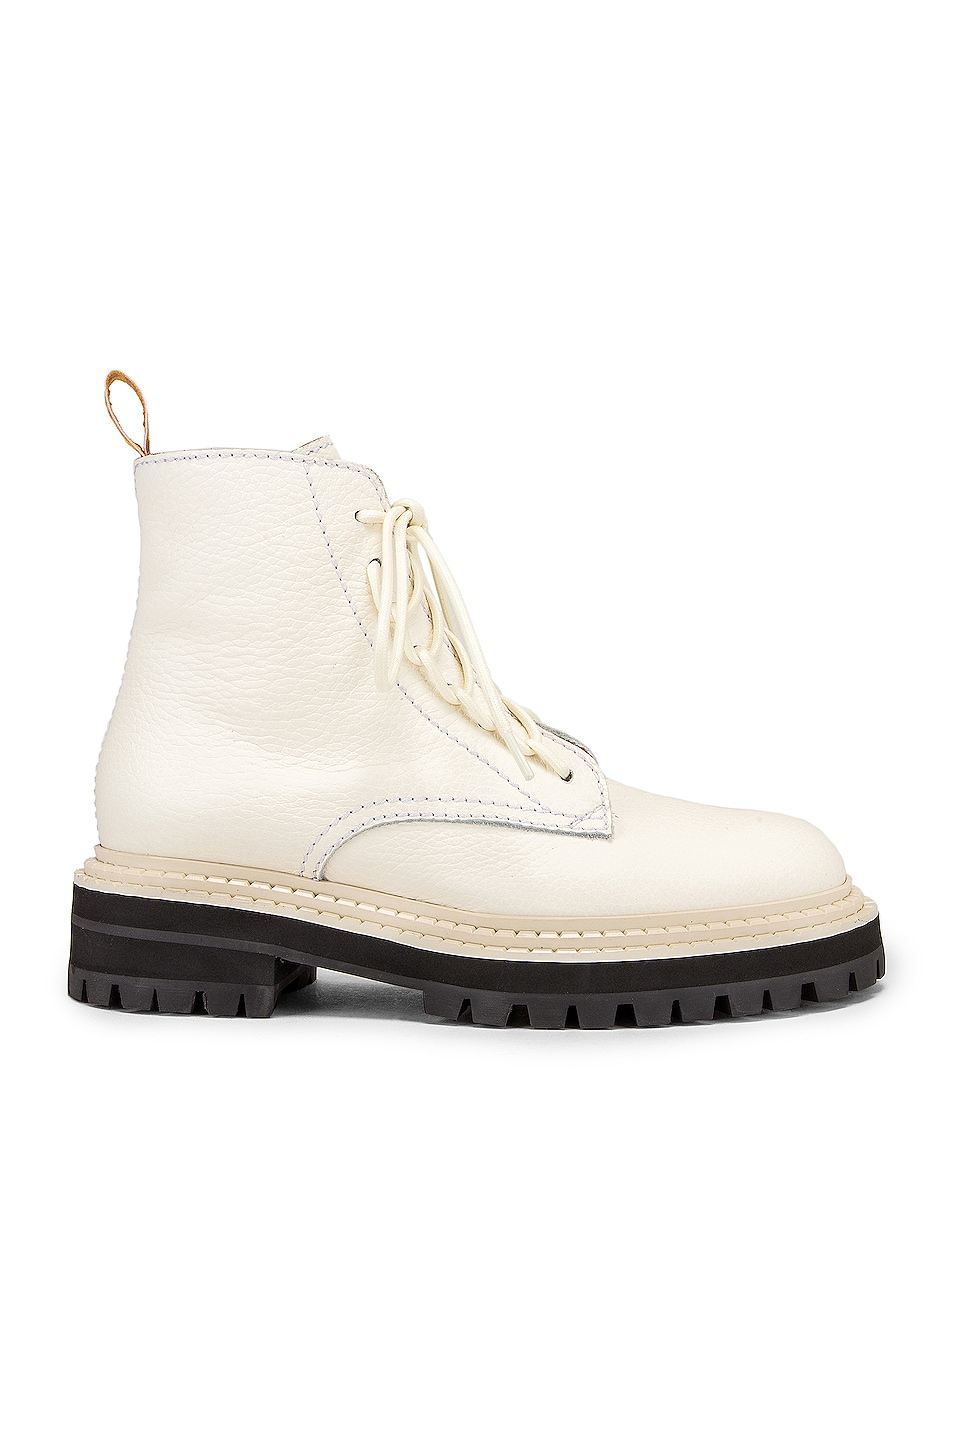 Image 1 of Proenza Schouler Chunky Boots in White